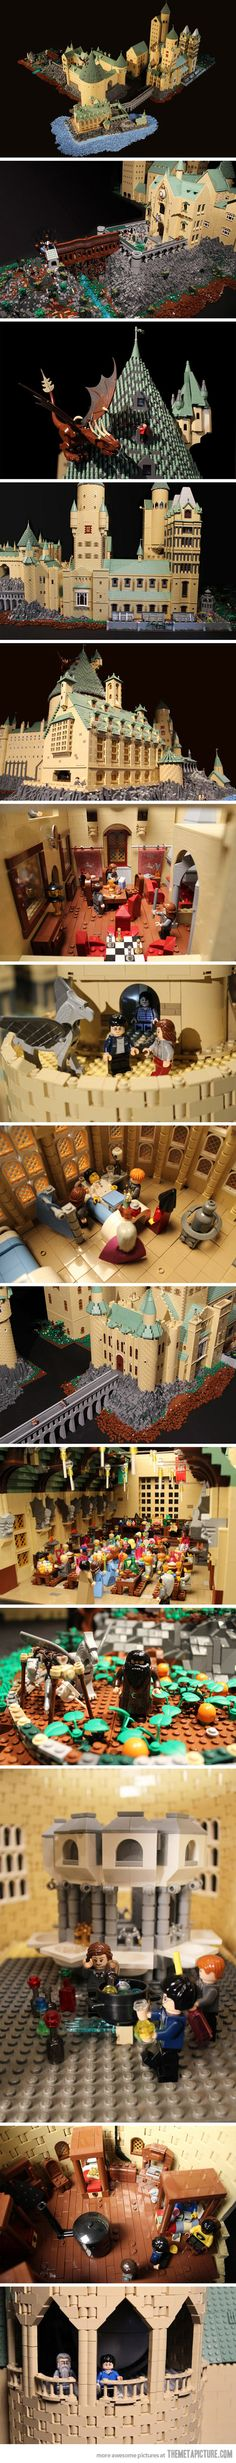 Harry Potter Lego Castle…  Maybe I should rethink my original plan of building the entire Hogwarts castle. ._.